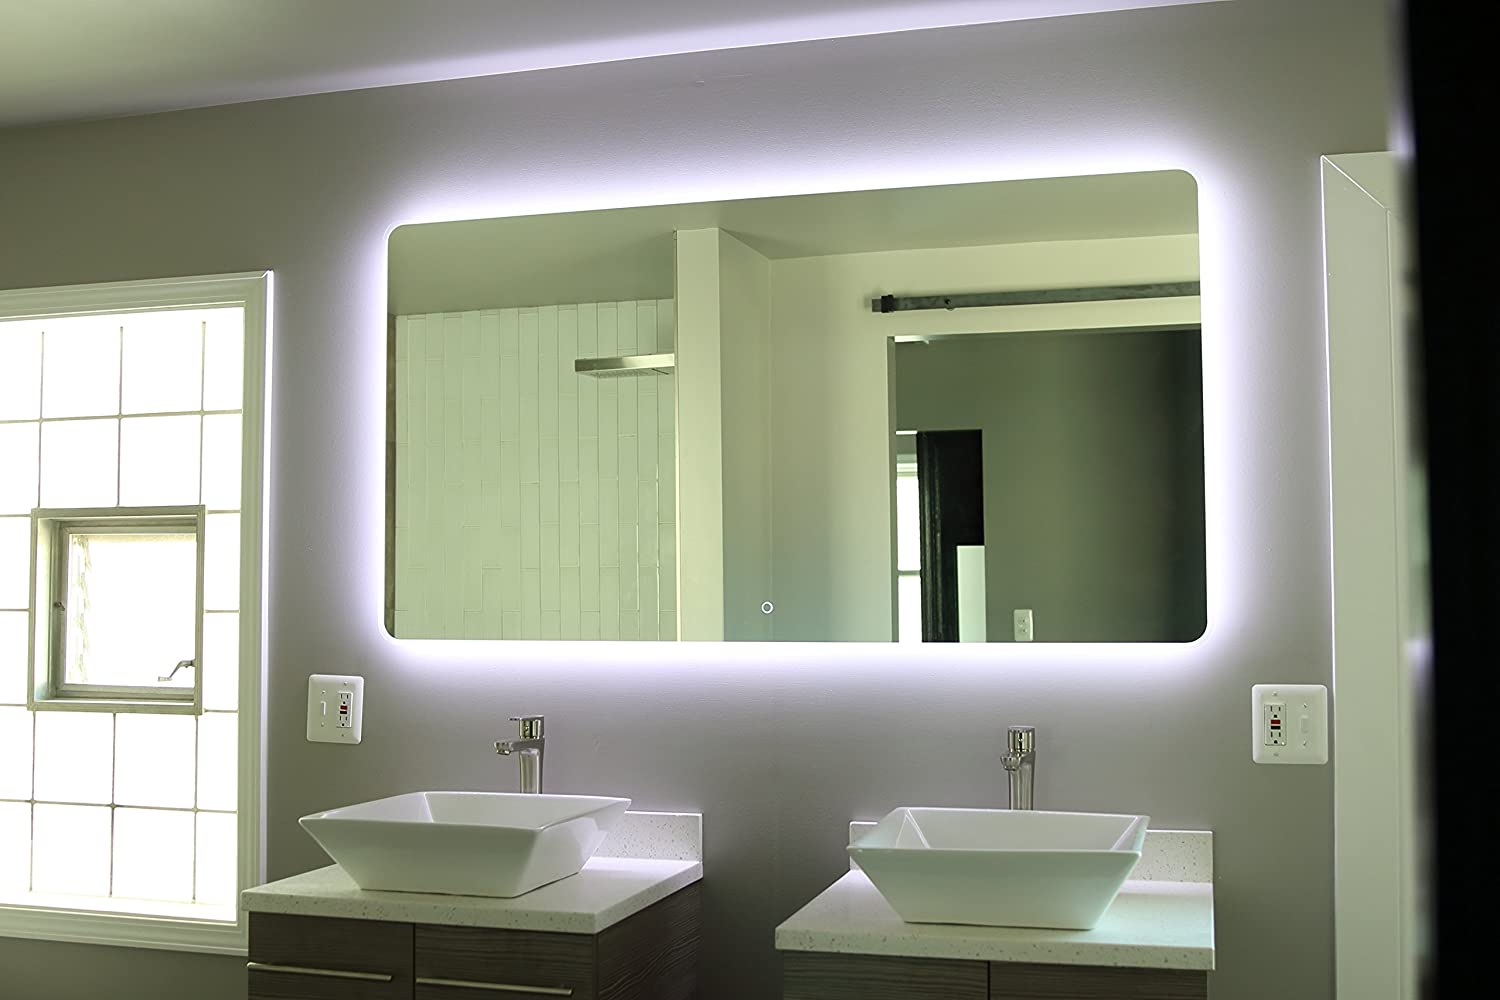 Bathroom sink and mirror - Amazon Com Windbay Backlit Led Light Bathroom Vanity Sink Mirror Illuminated Mirror 36 Home Kitchen